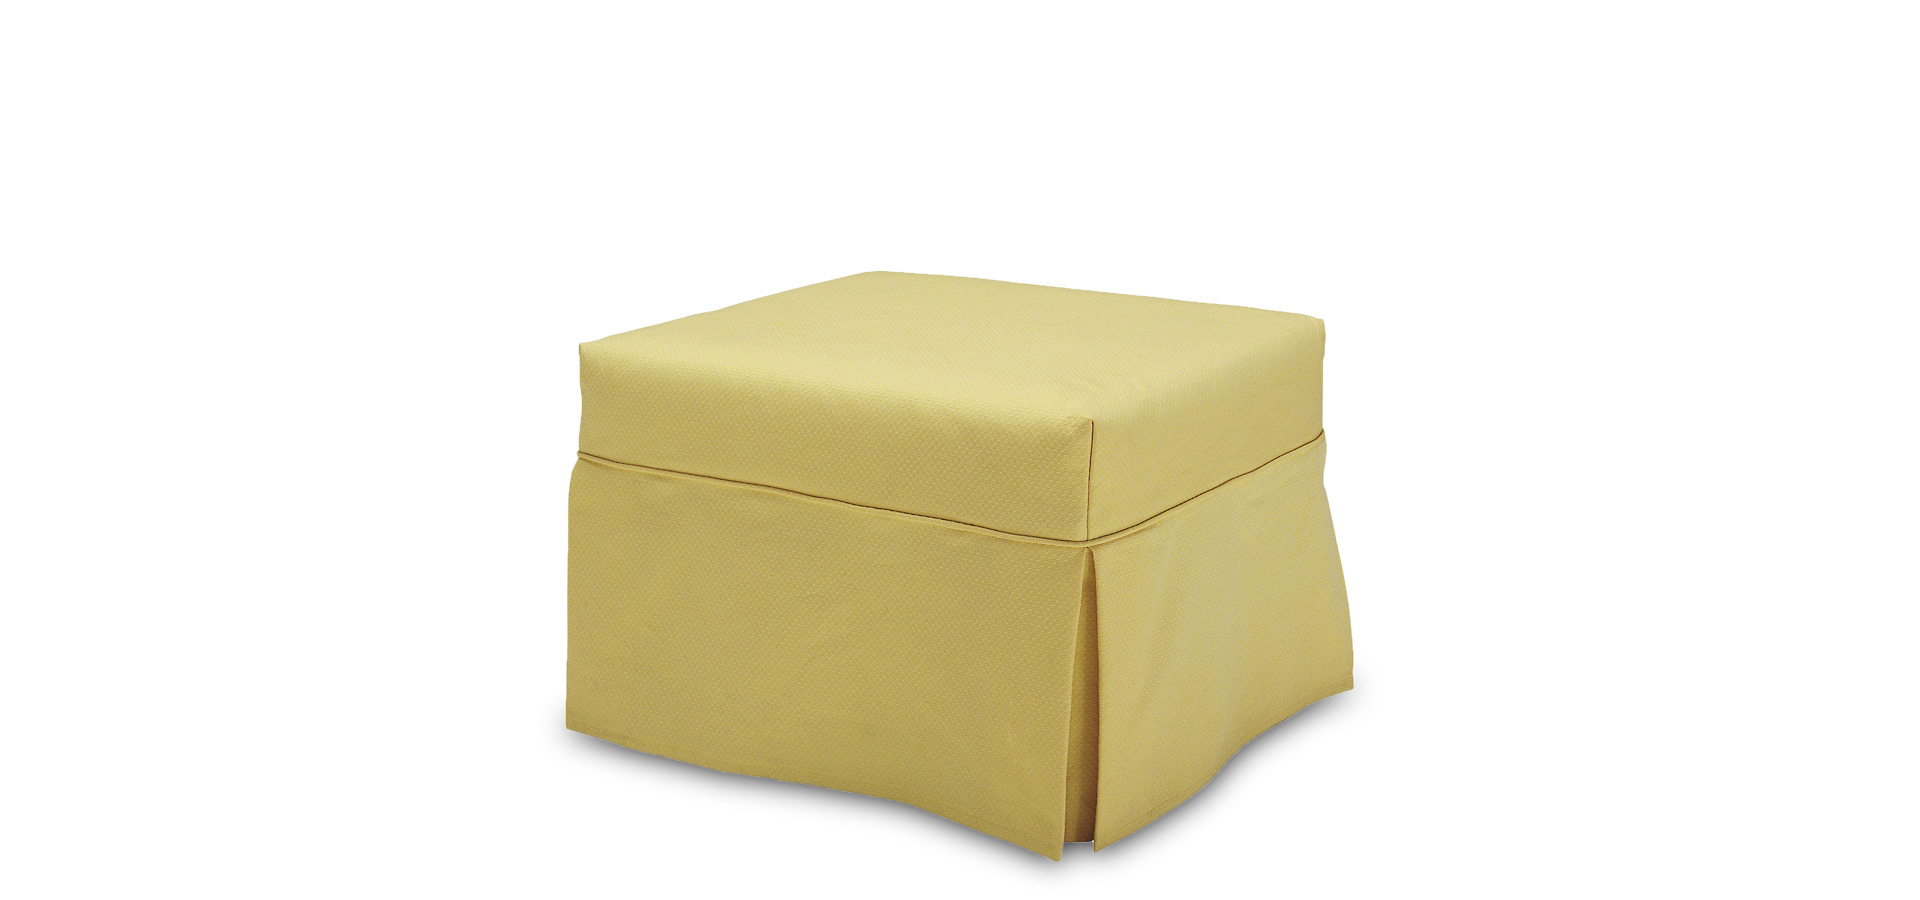 Domingo.Contract.DivanolettoSeatersofa_POUF-BRONTOLO-LETTO